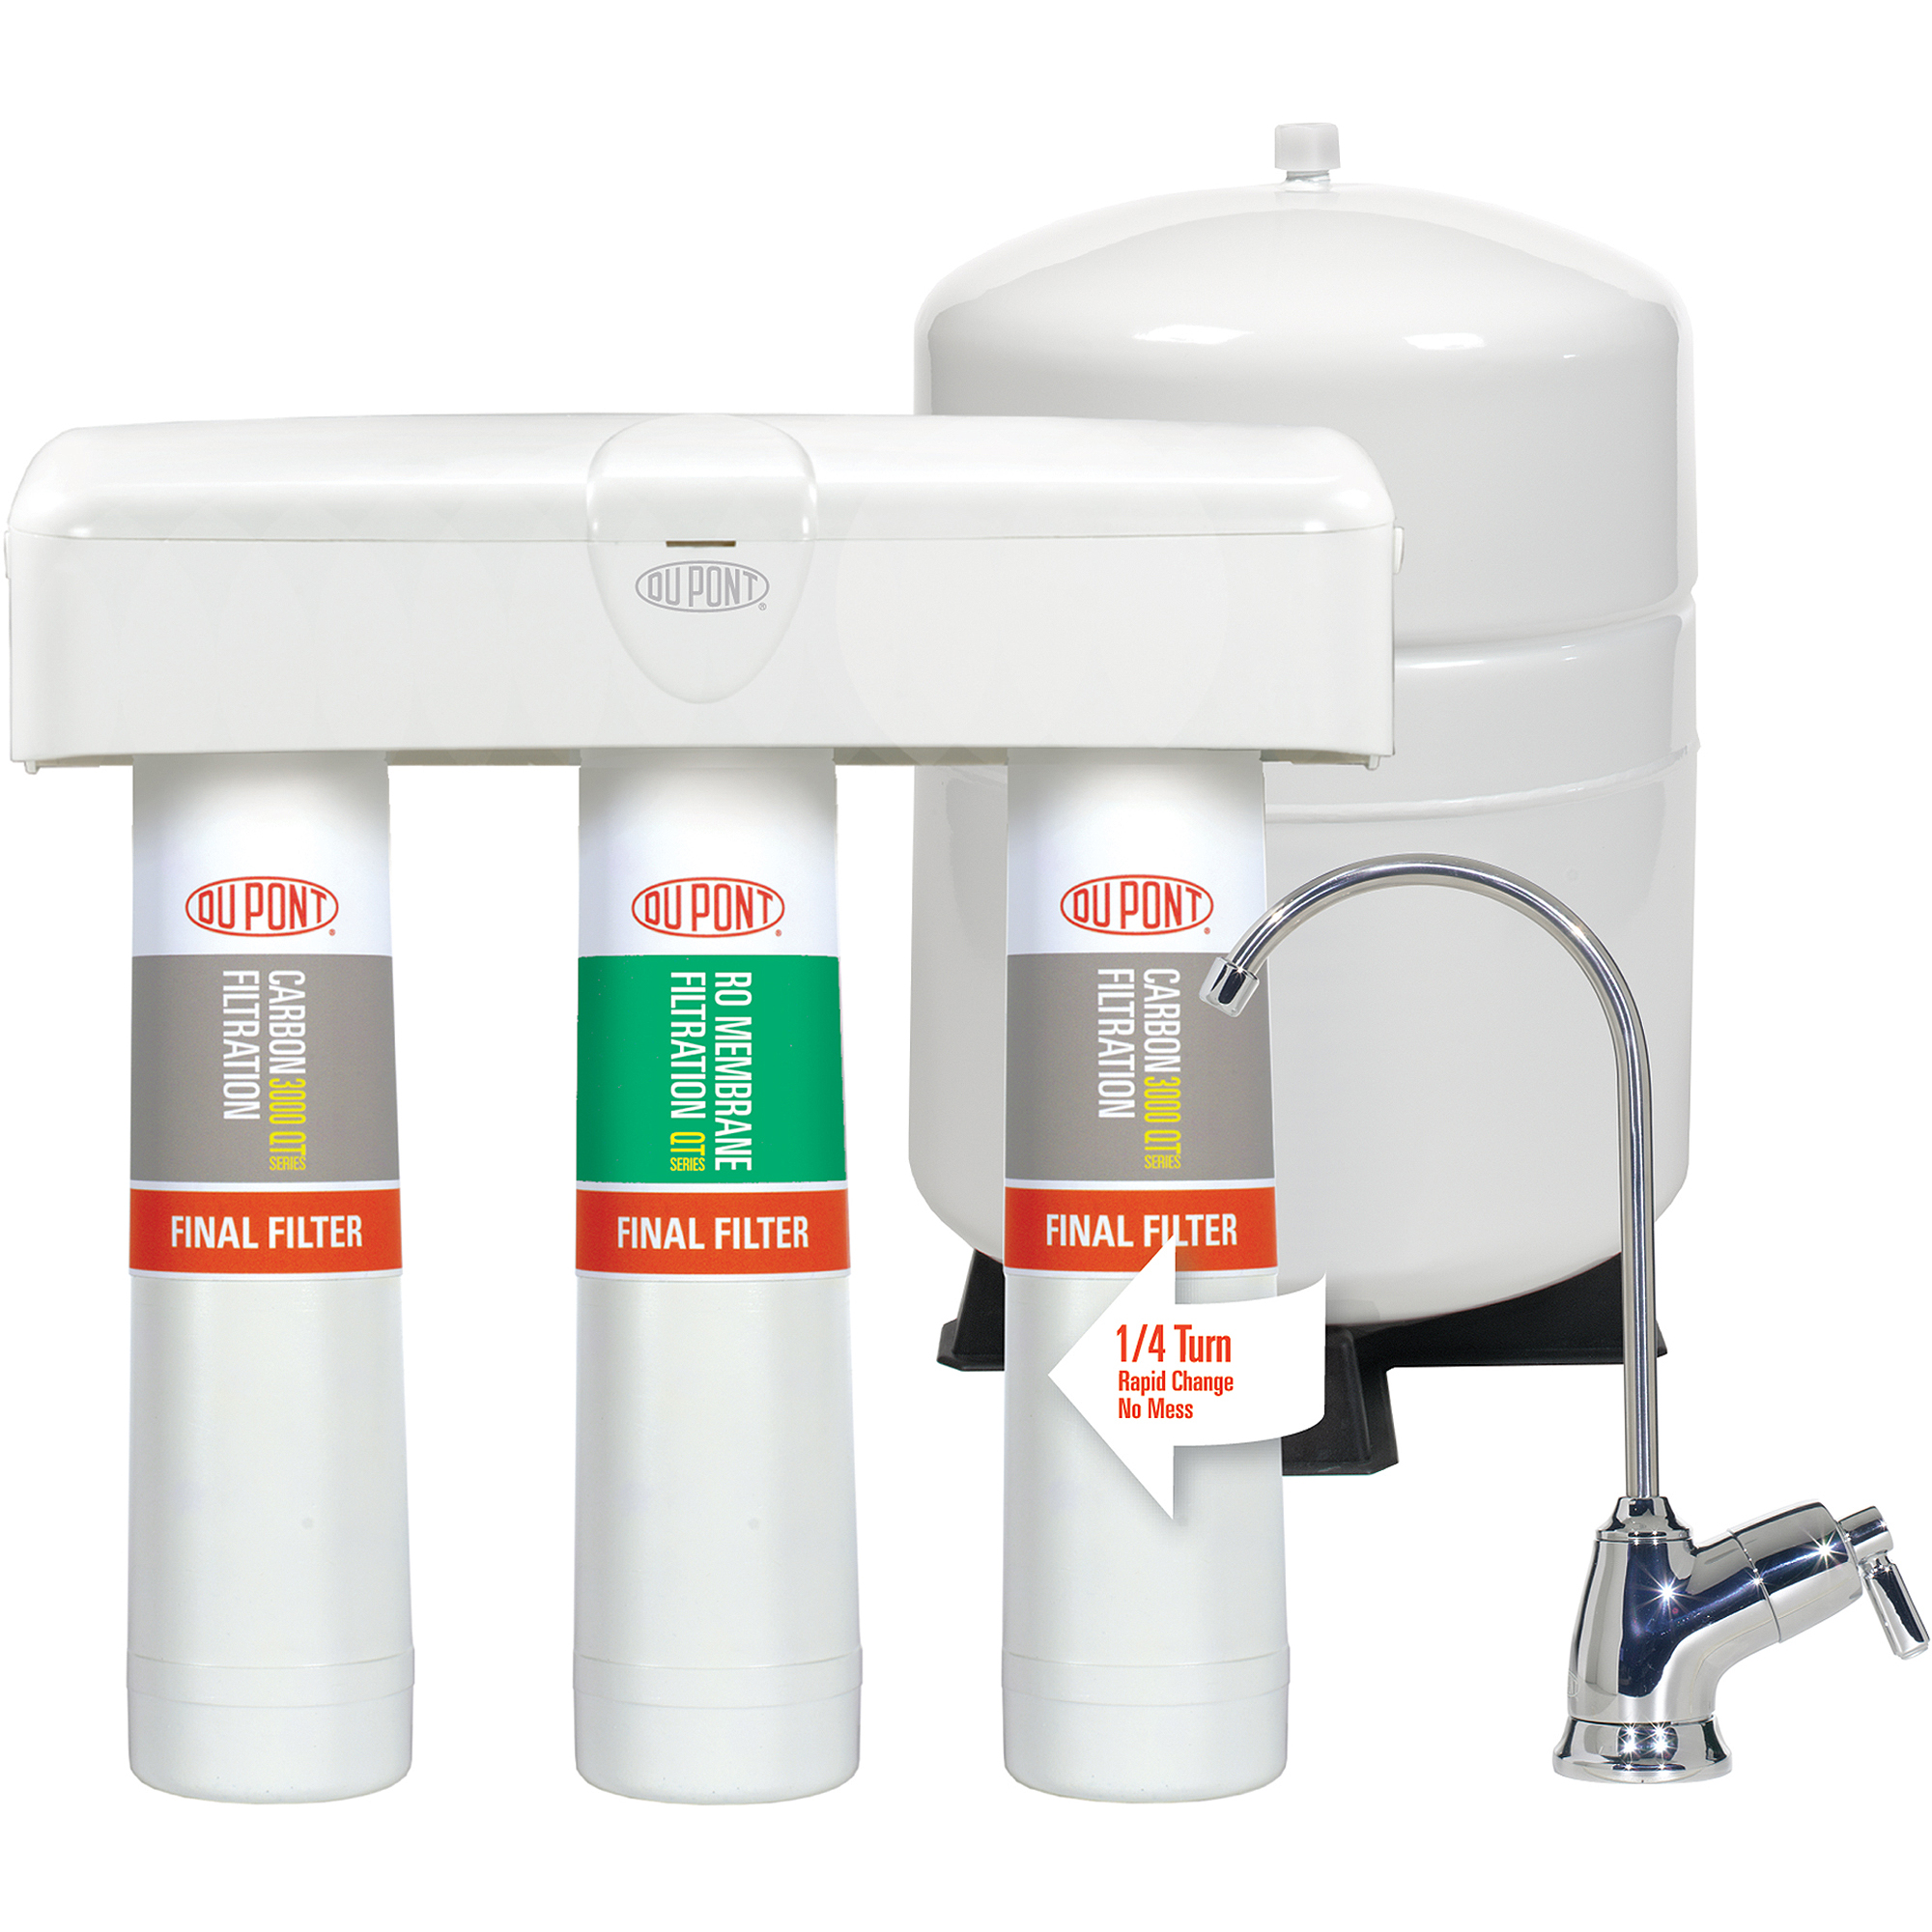 DuPont QuickTwist 3-Stage Reverse Osmosis Water Filtratio...